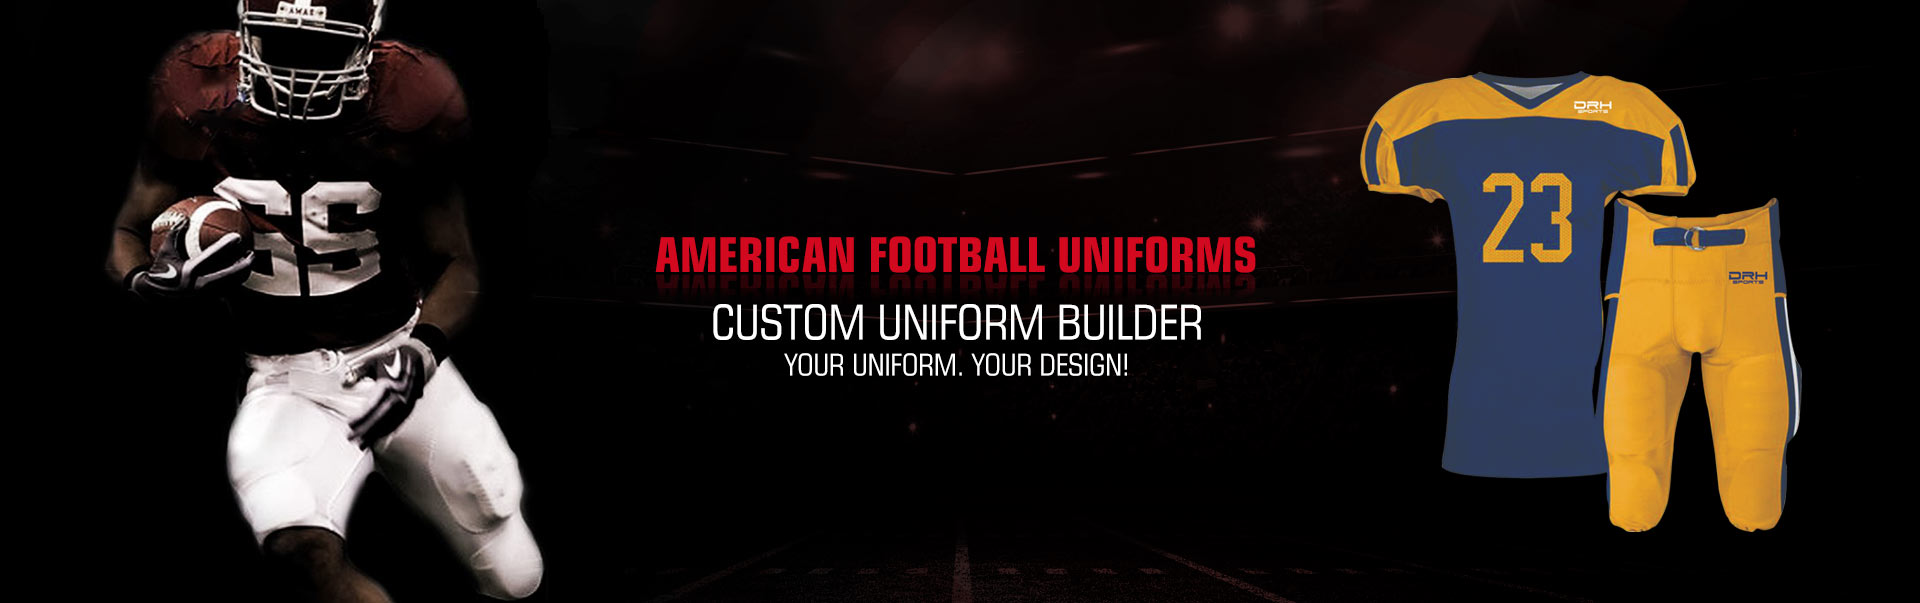 American Football Uniform Wholesaler, Suppliers in United Kingdom